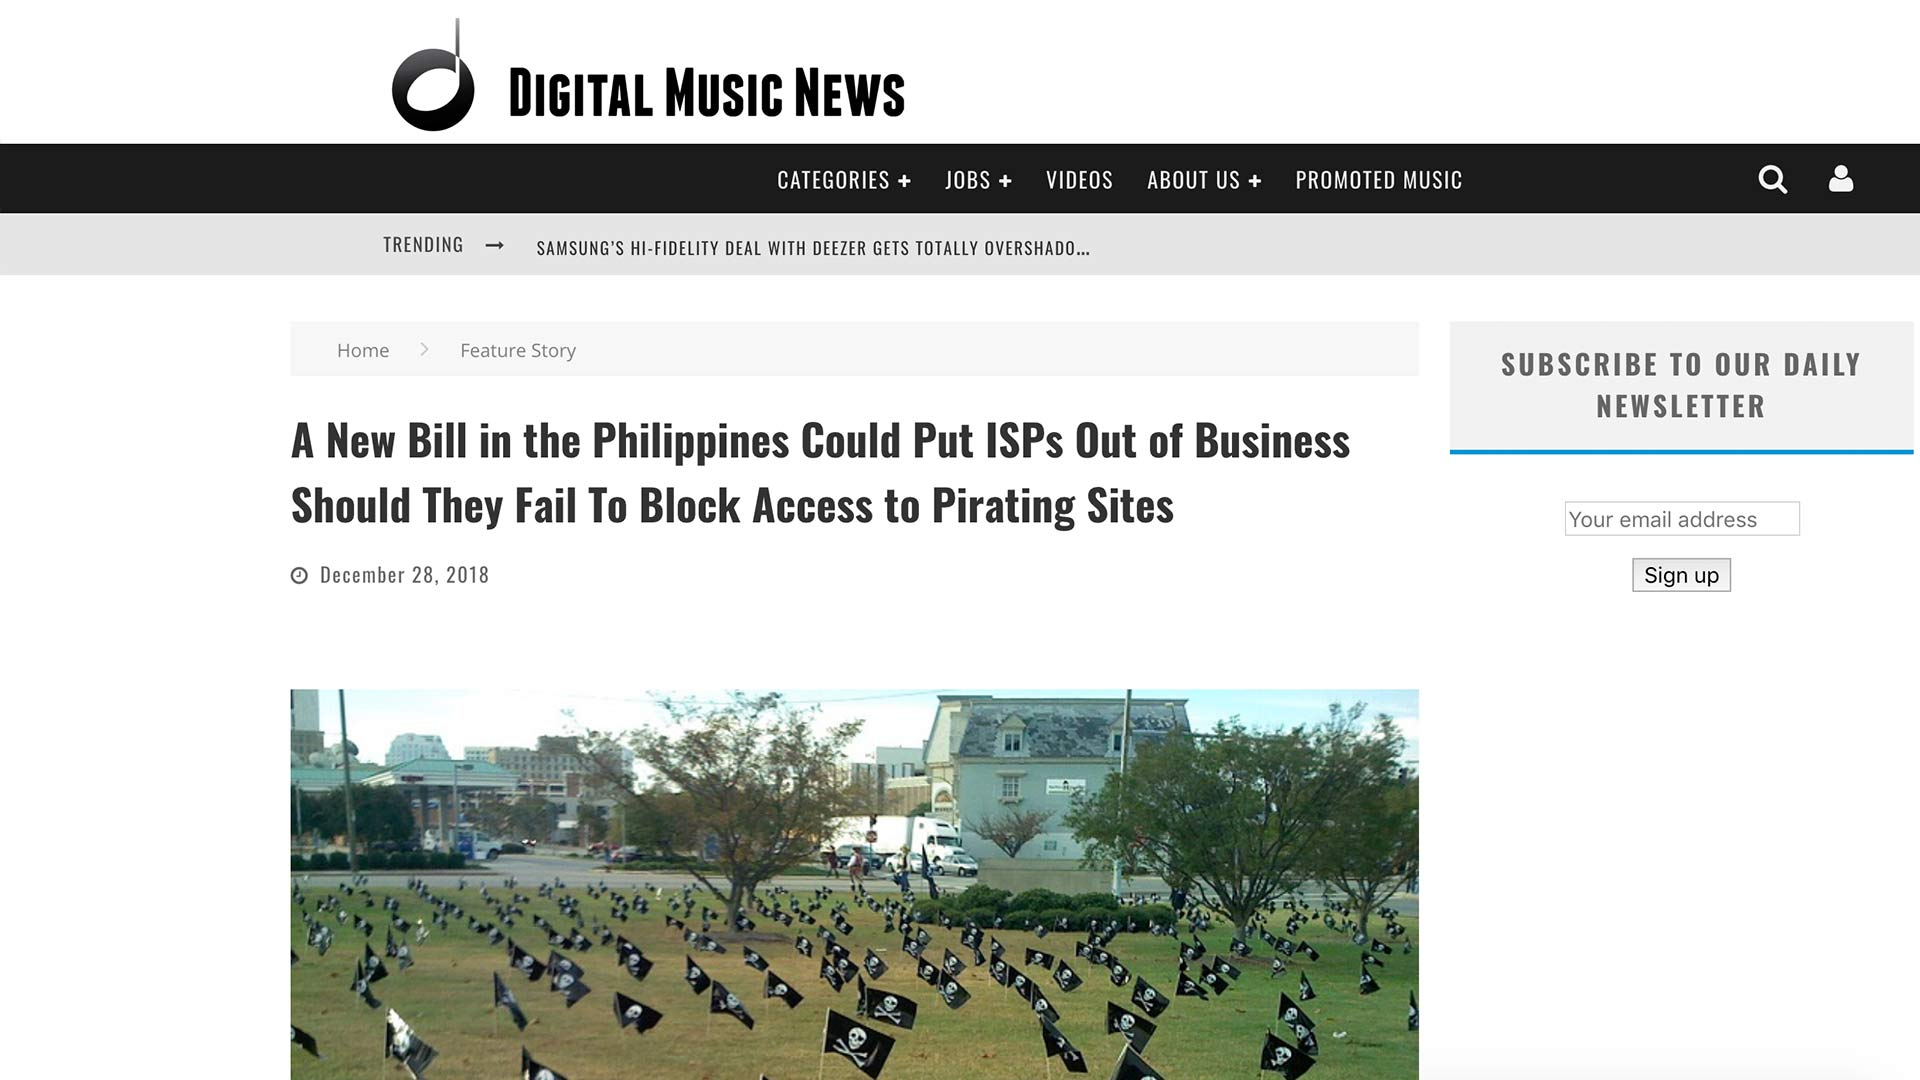 Fairness Rocks News A New Bill in the Philippines Could Put ISPs Out of Business Should They Fail To Block Access to Pirating Sites